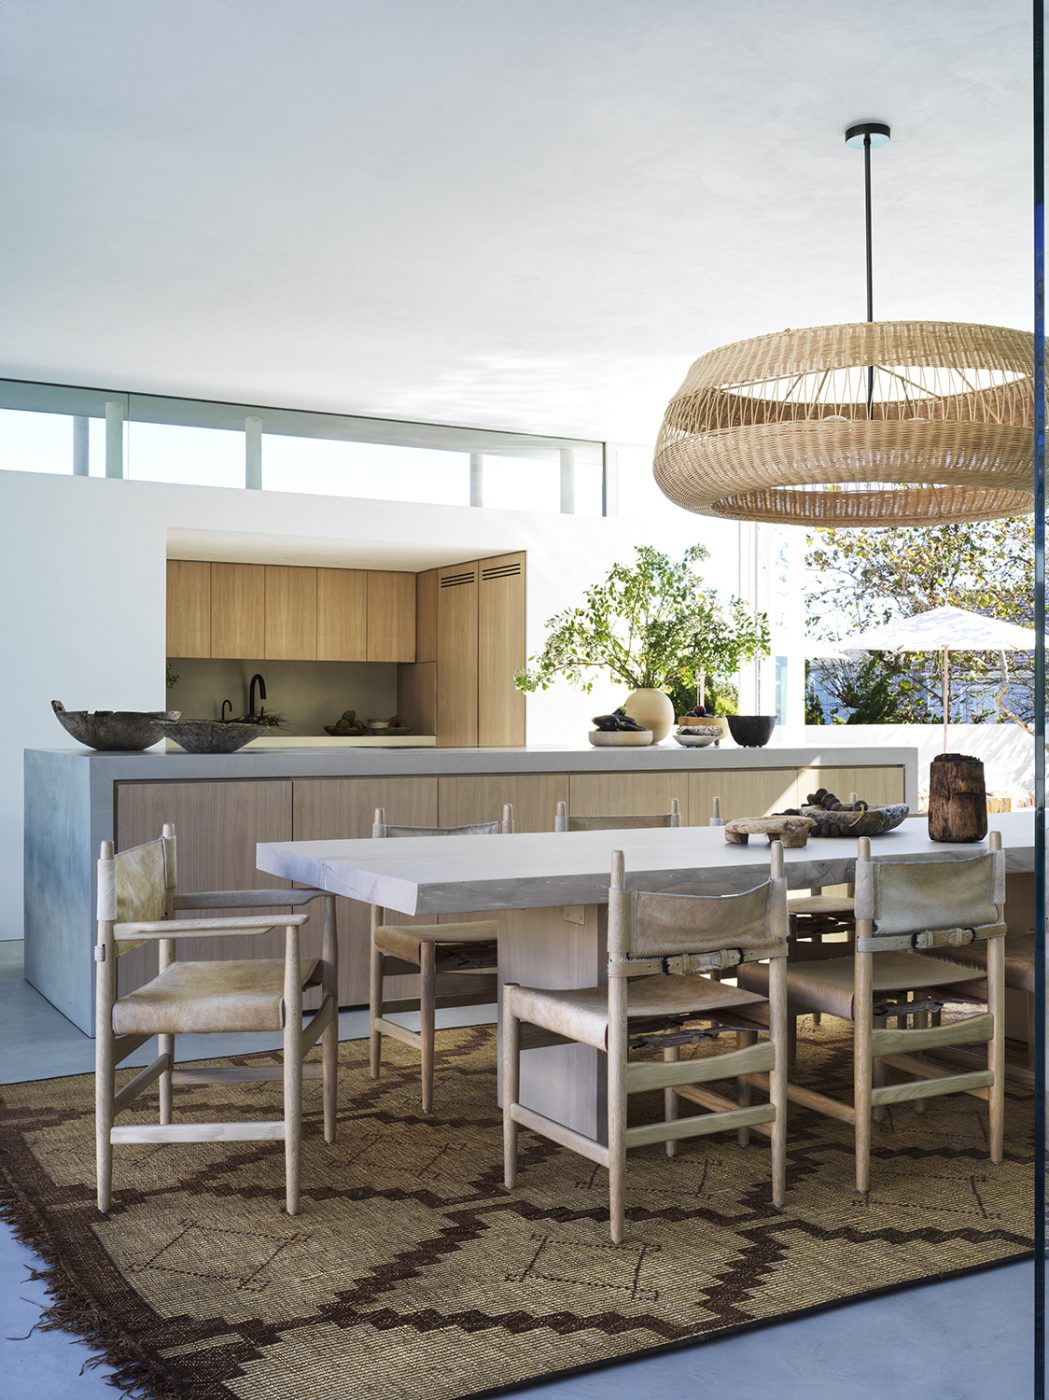 Dining room and kitchen area designed by Alexander